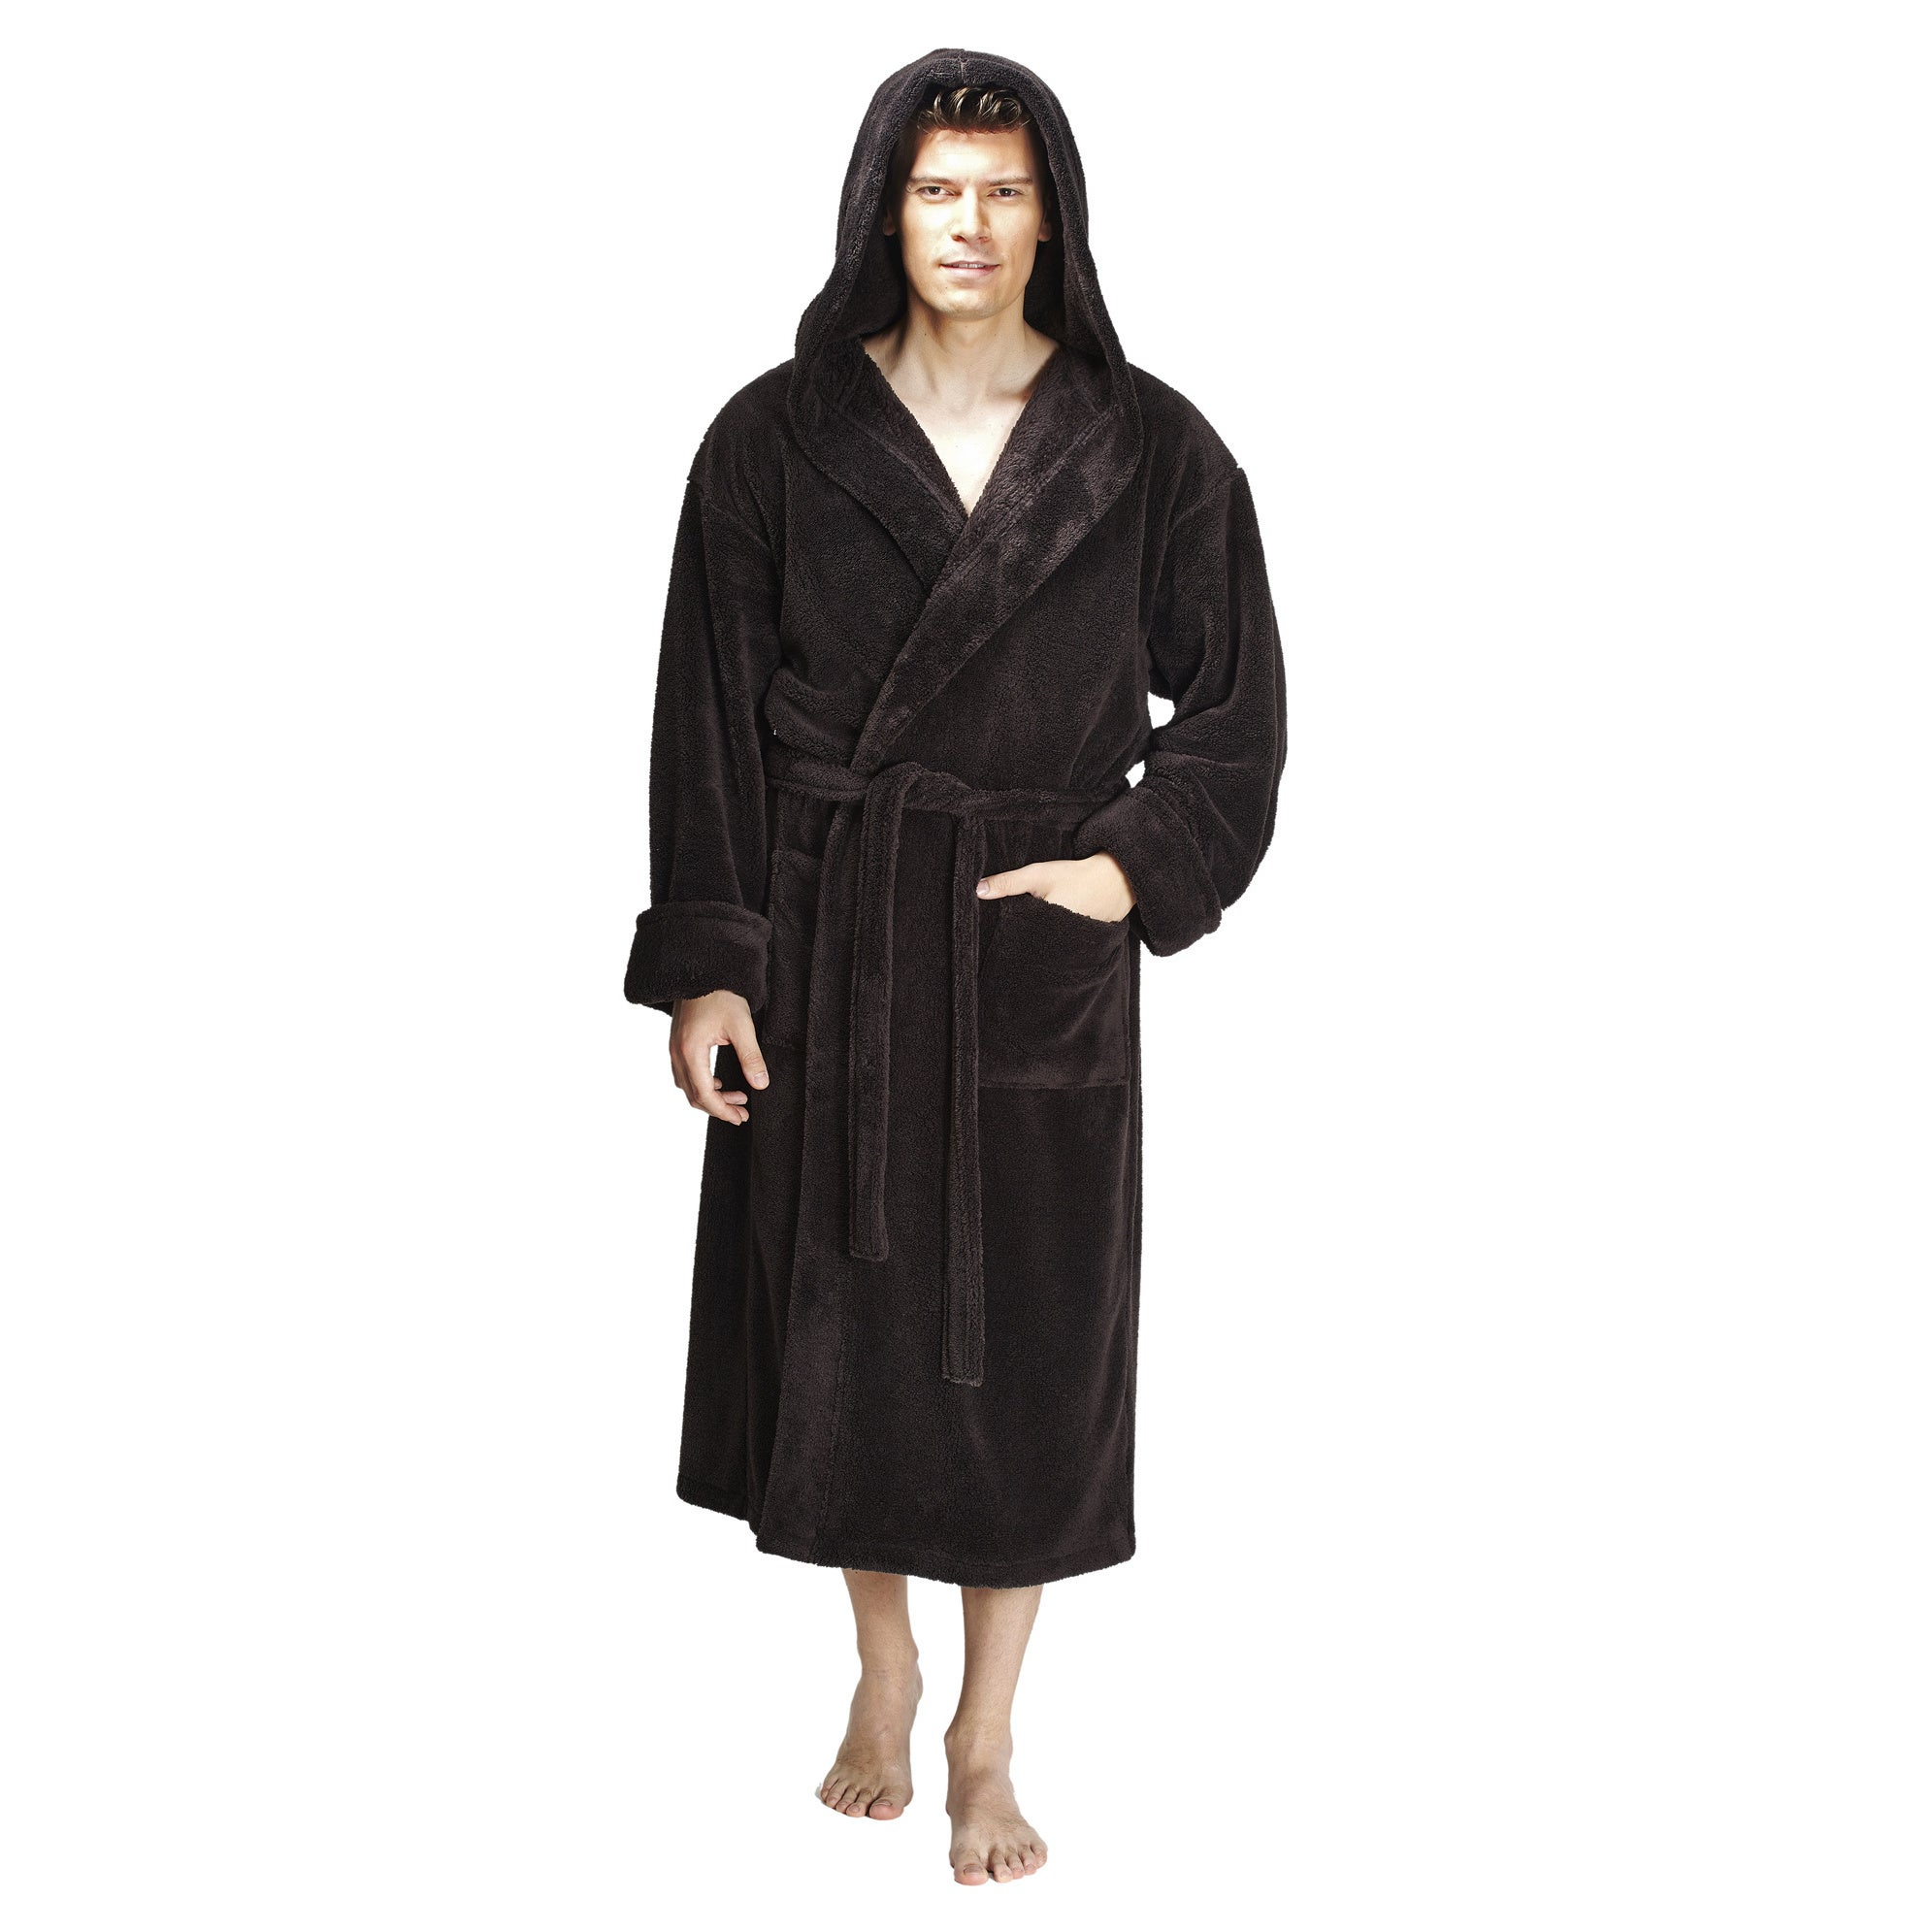 1af8628fae Shop Men s Hooded Fleece Bathrobe Turkish Soft Plush Robe - Free Shipping  Today - Overstock - 14387064